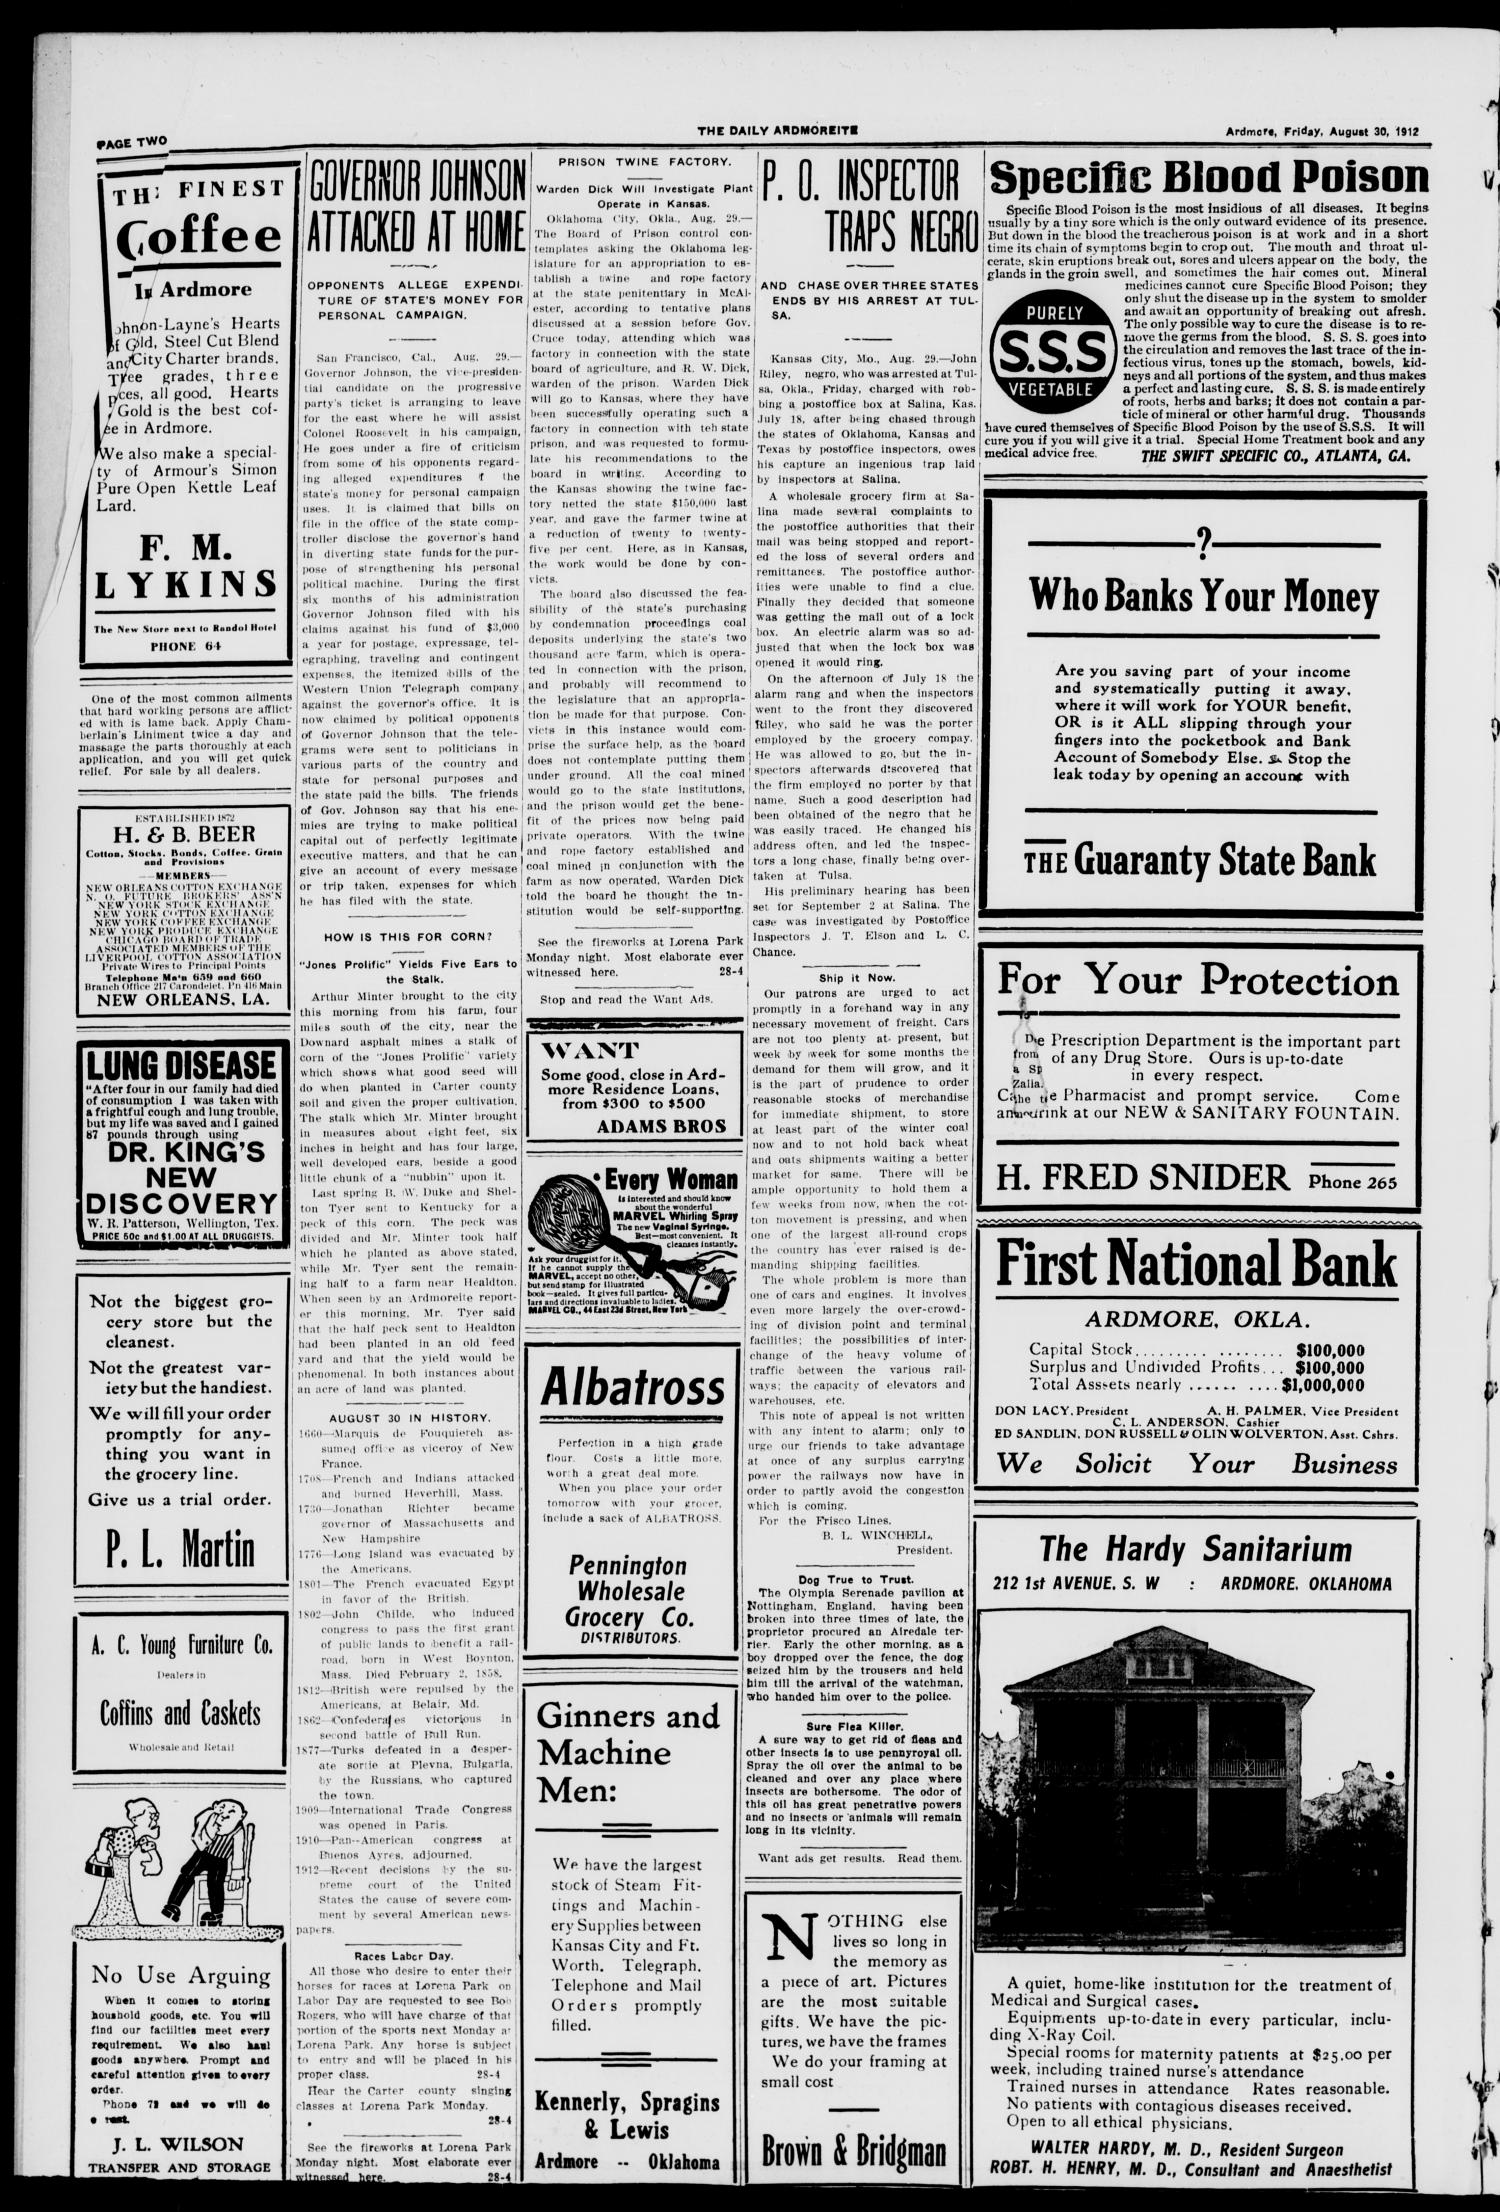 The Daily Ardmoreite. (Ardmore, Okla.), Vol. 18, No. 291, Ed. 1 Friday, August 30, 1912                                                                                                      [Sequence #]: 2 of 8